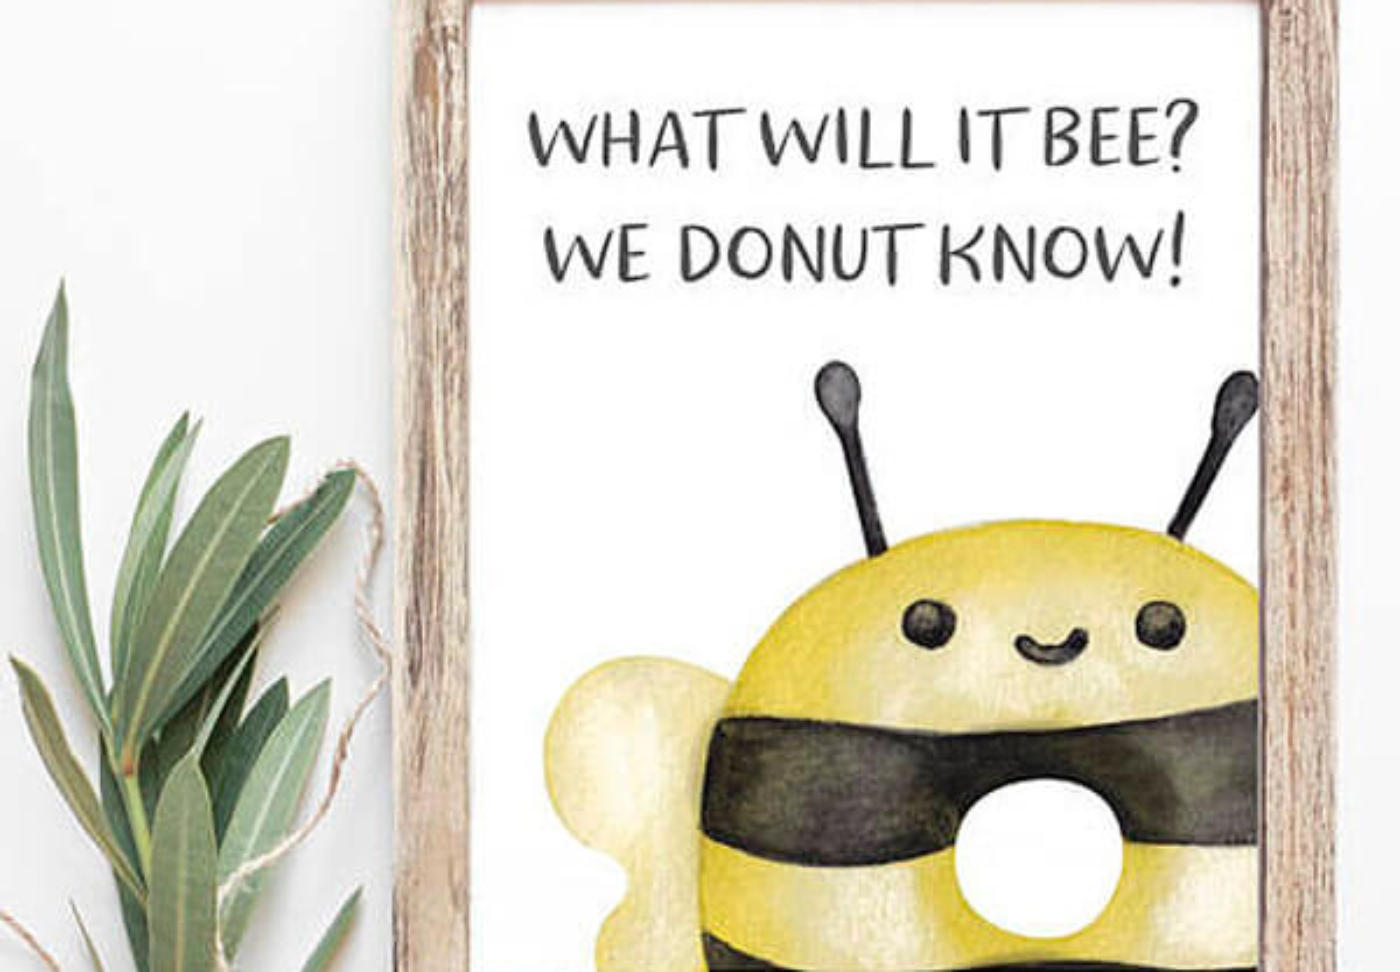 What will it bee? We donut know! Graphic for a What will it bee gender reveal party